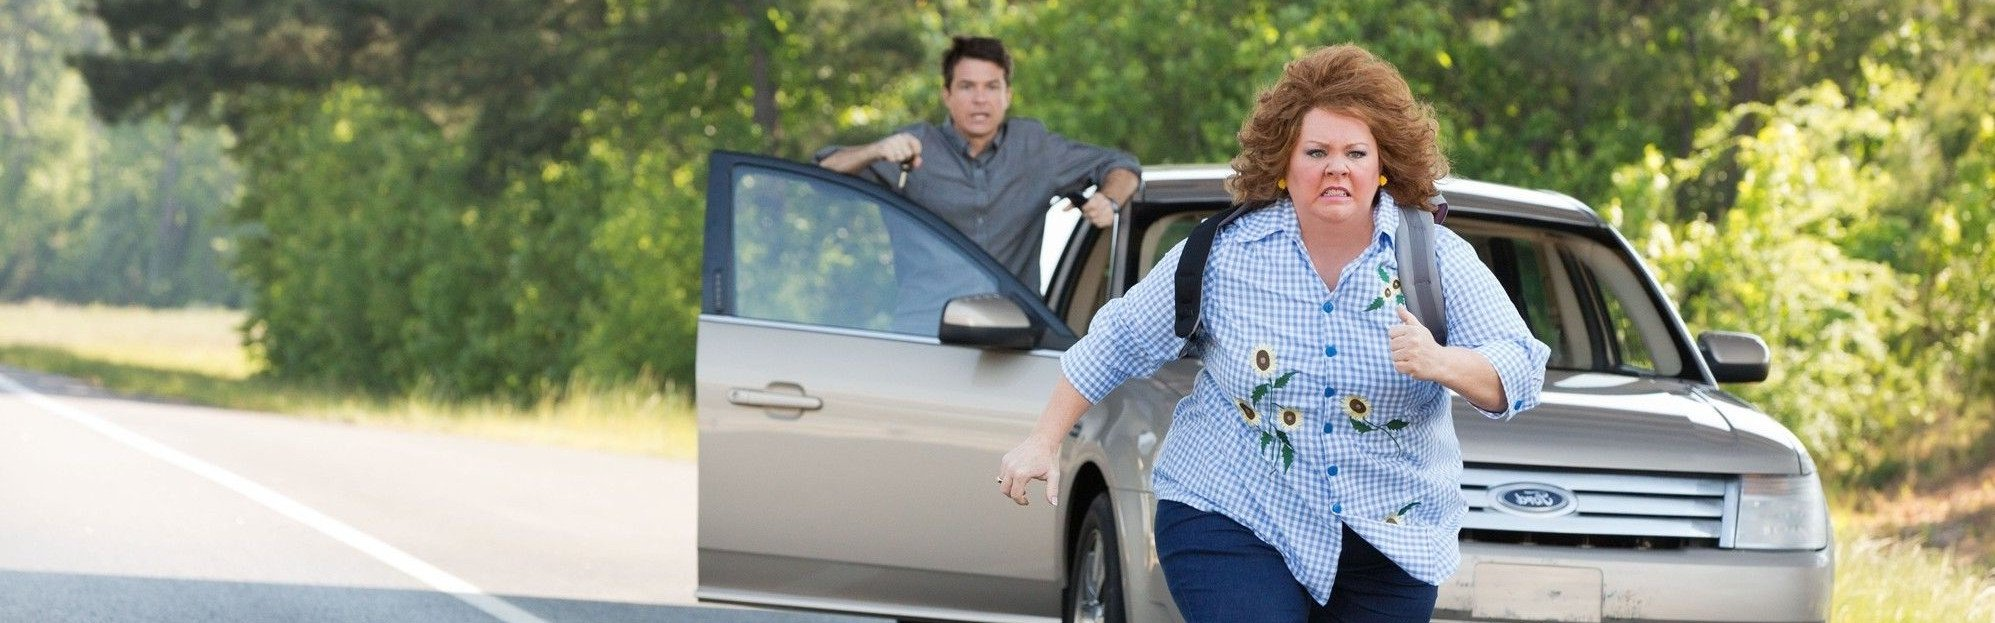 Film: Identity Thief feature image